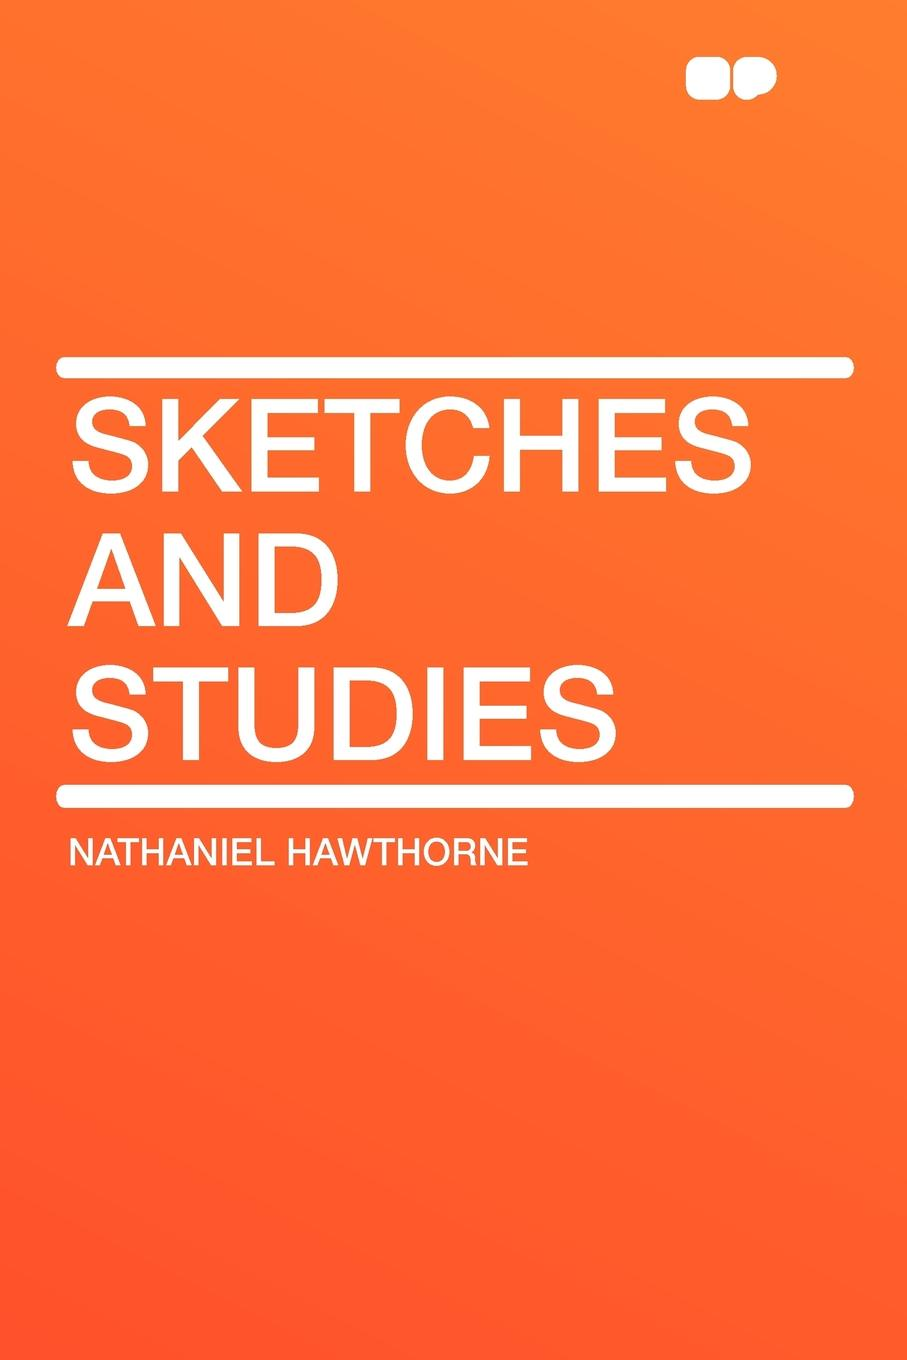 Hawthorne Nathaniel Sketches and Studies